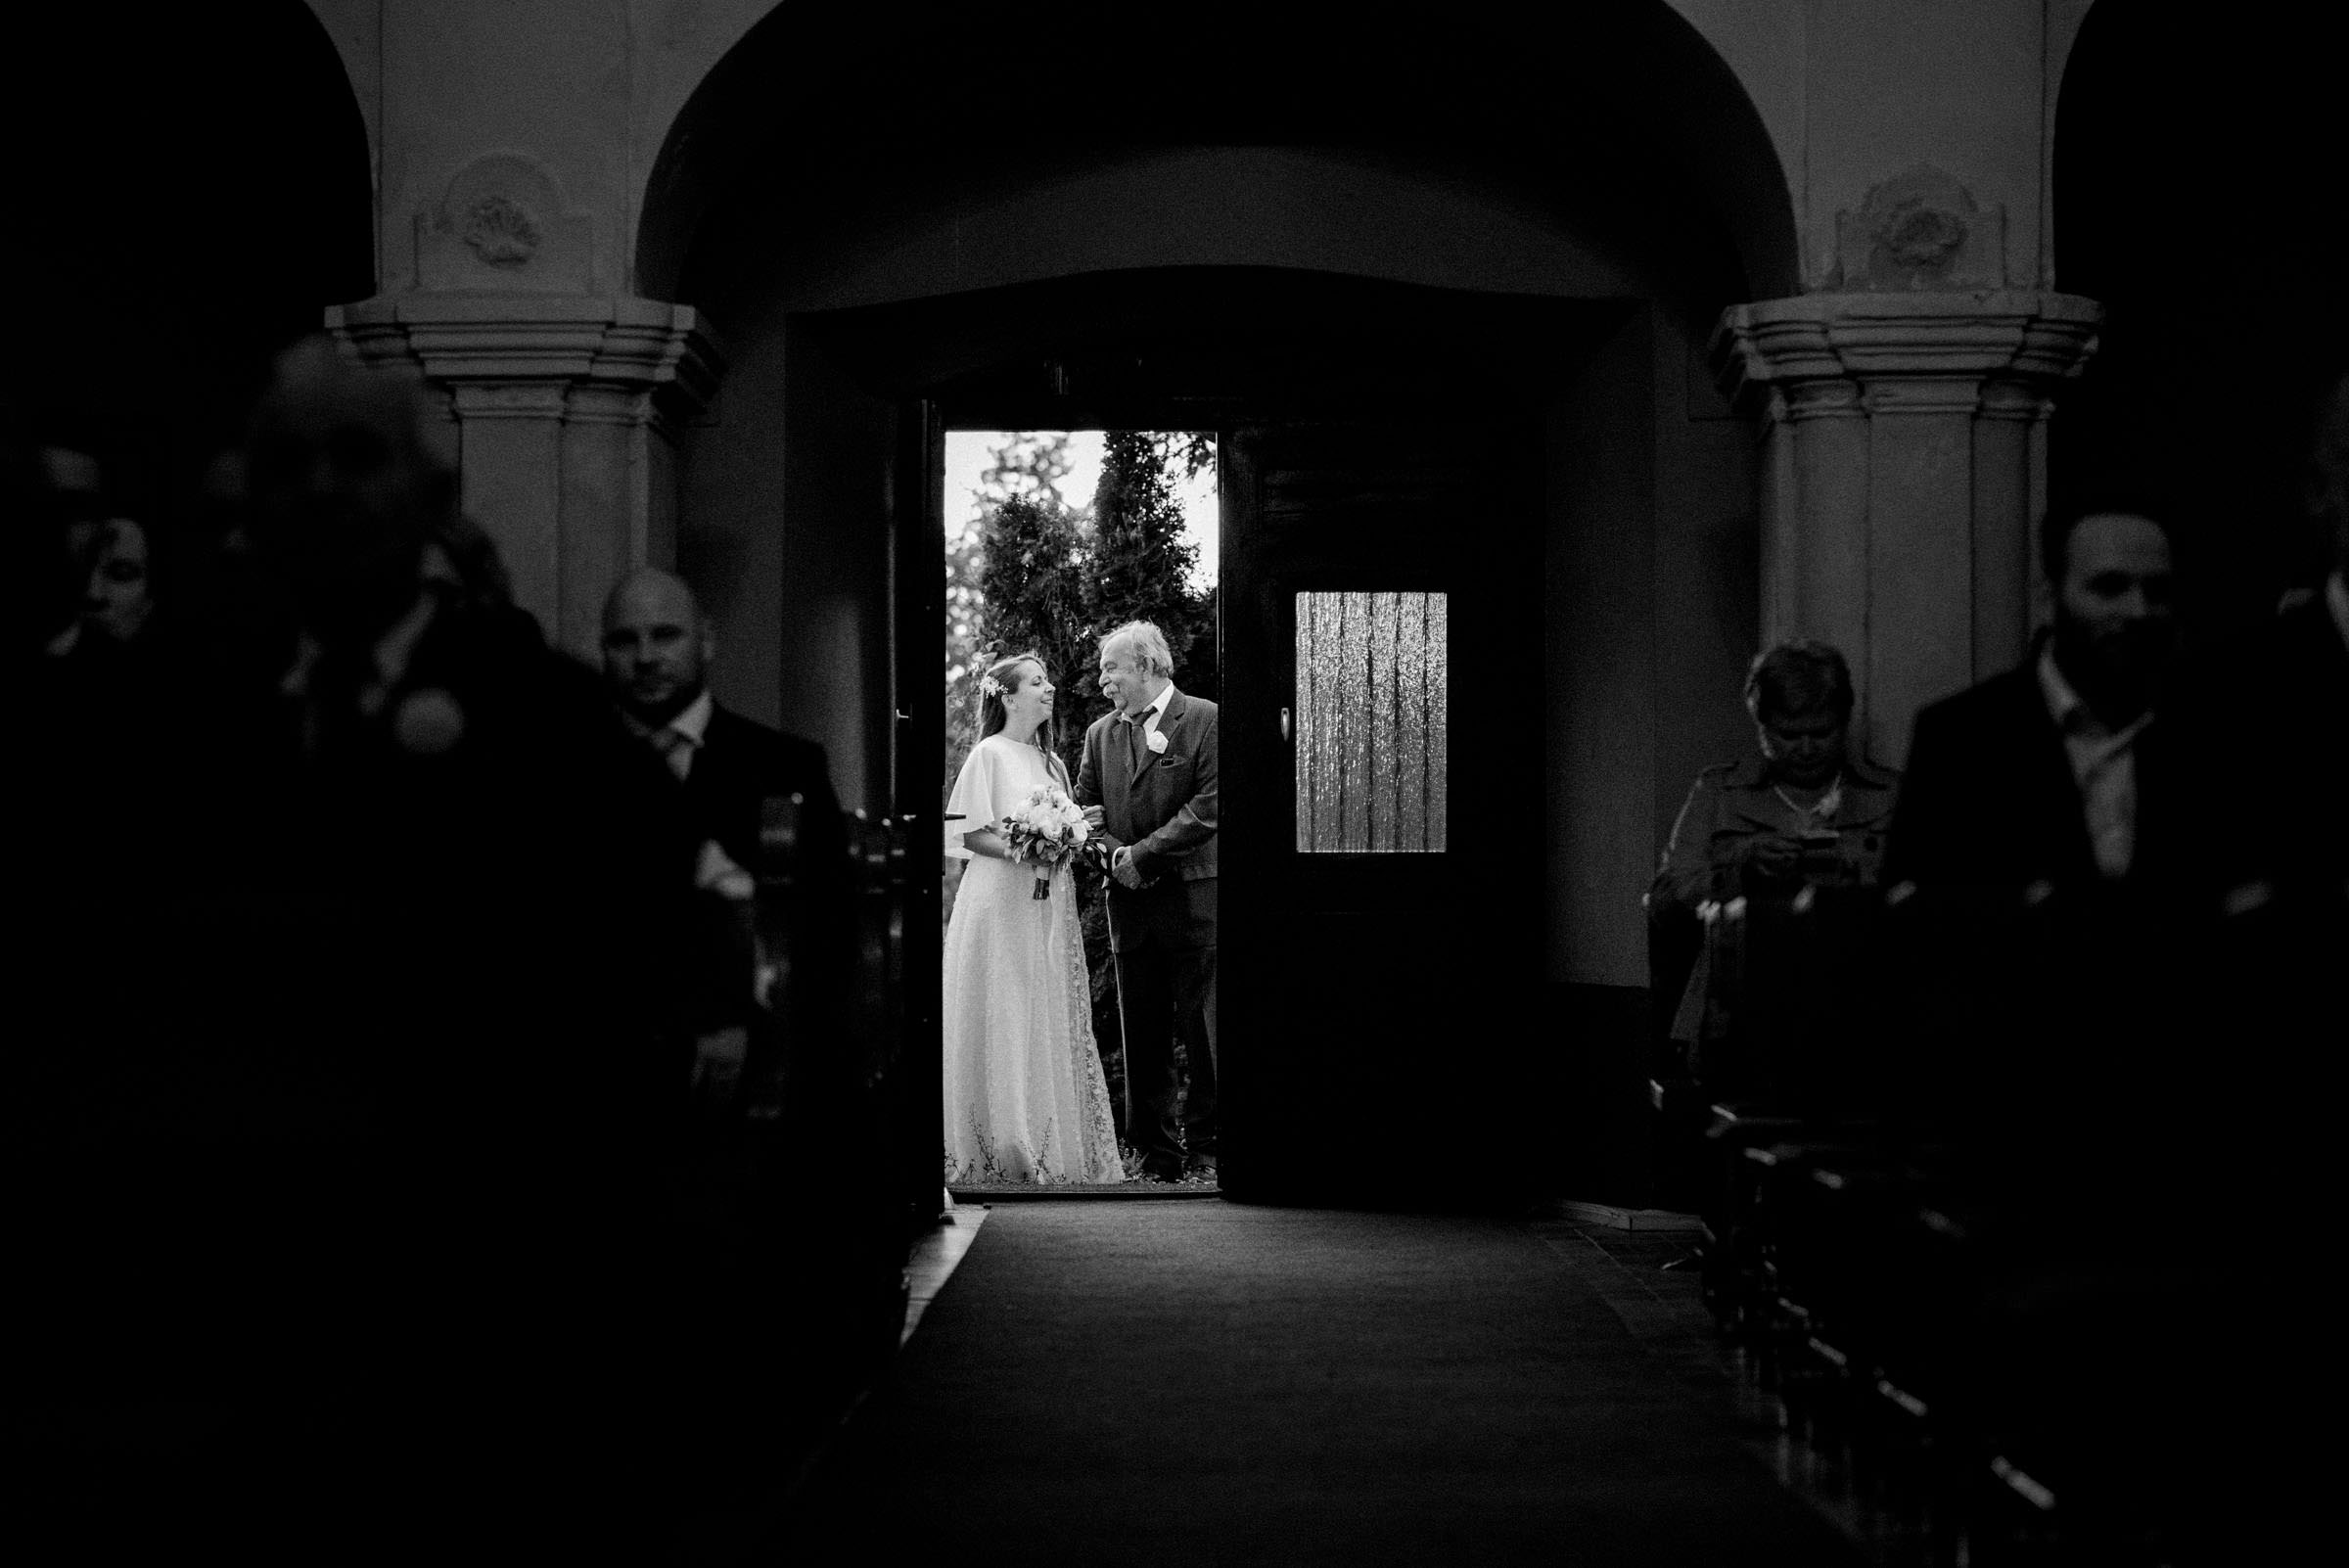 bride and her father sharing a moment outside the church before ceremony